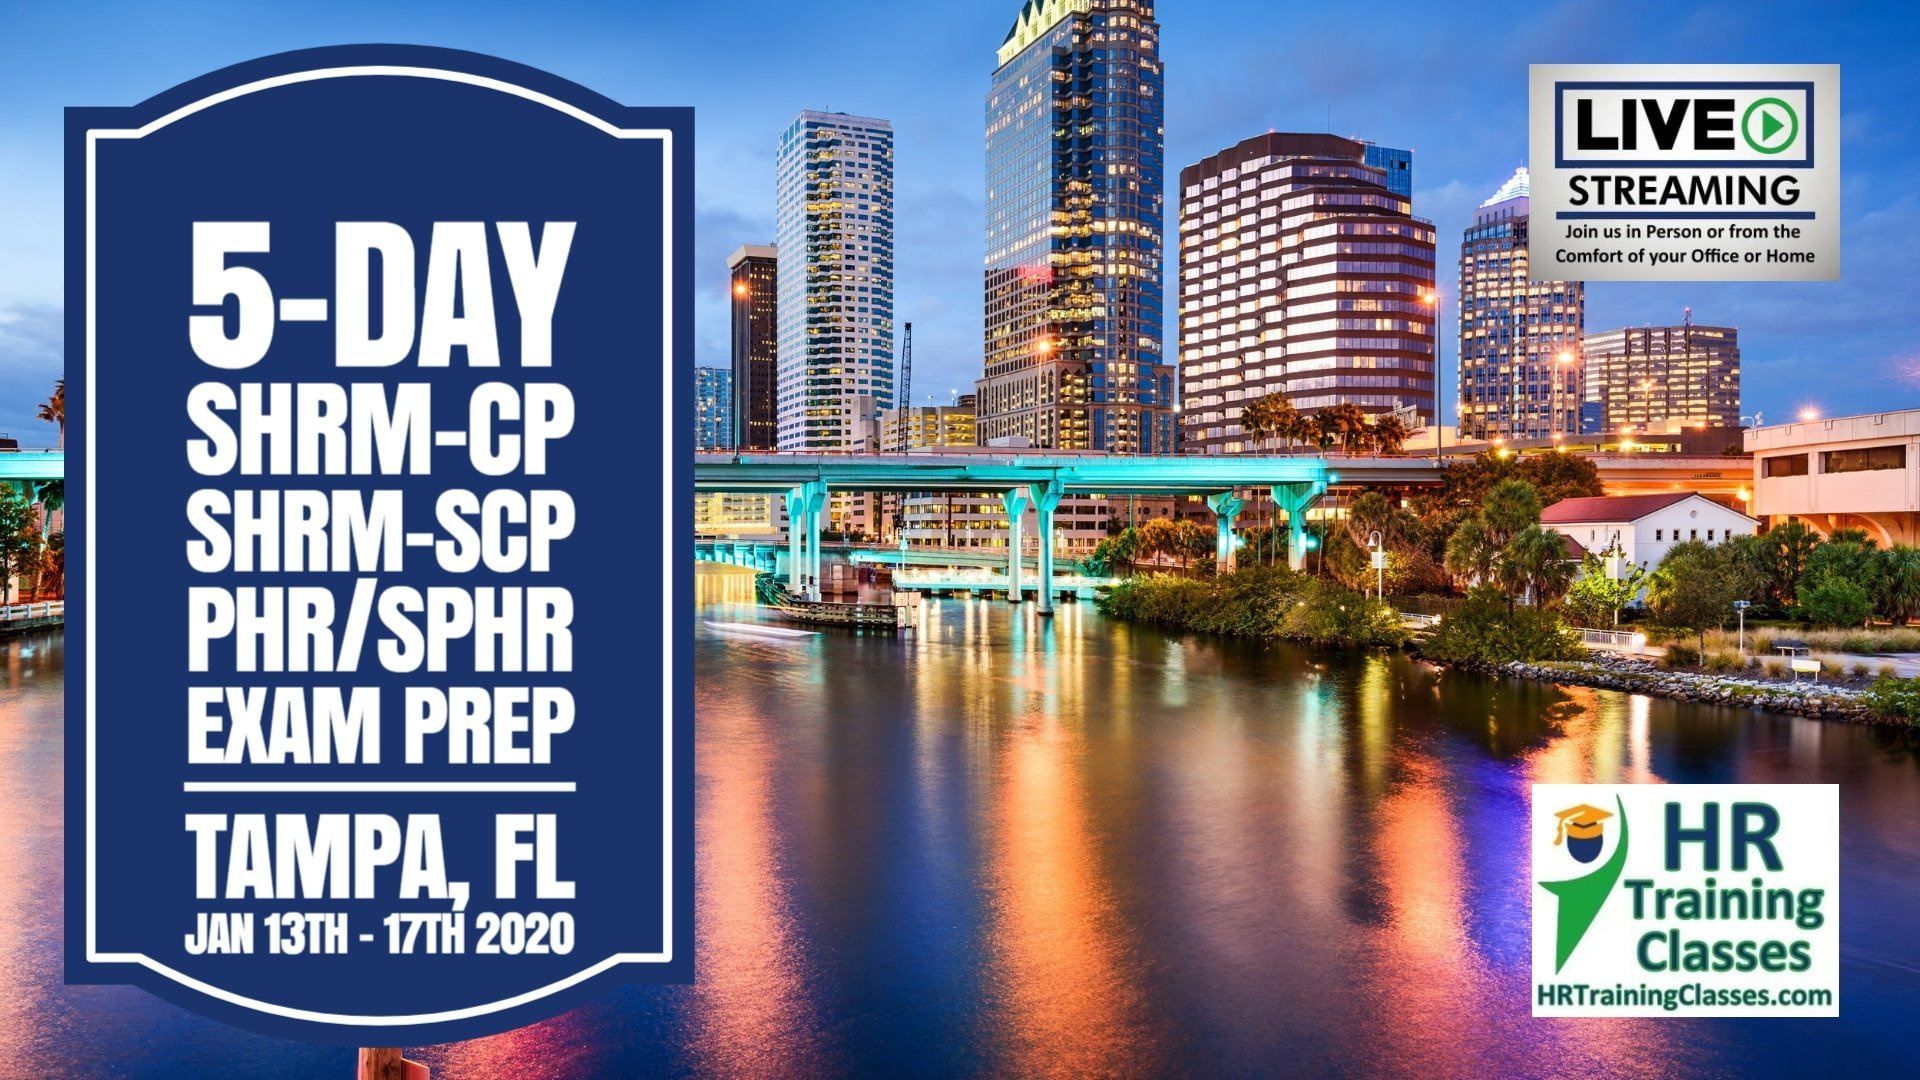 5 Day SHRM-CP, SHRM-SCP, PHR, SPHR Exam Prep Boot Camp in Tampa, FL (Starts 1-13-2020)